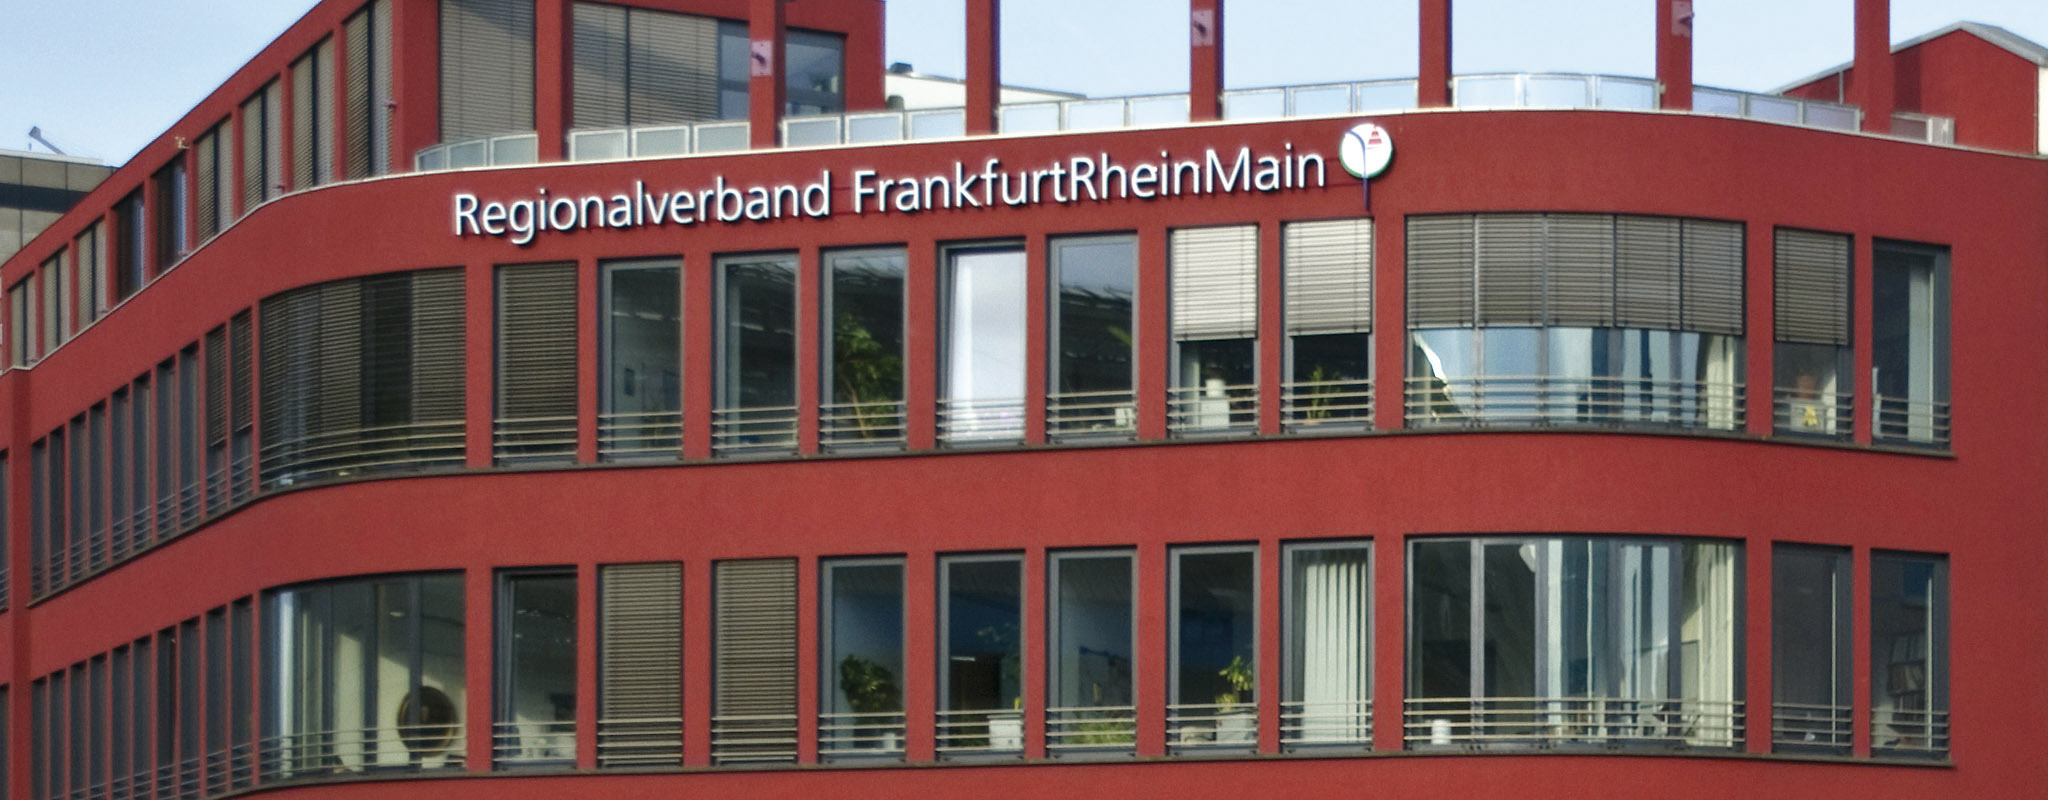 Office Regional Authority FrankfurtRheinMain